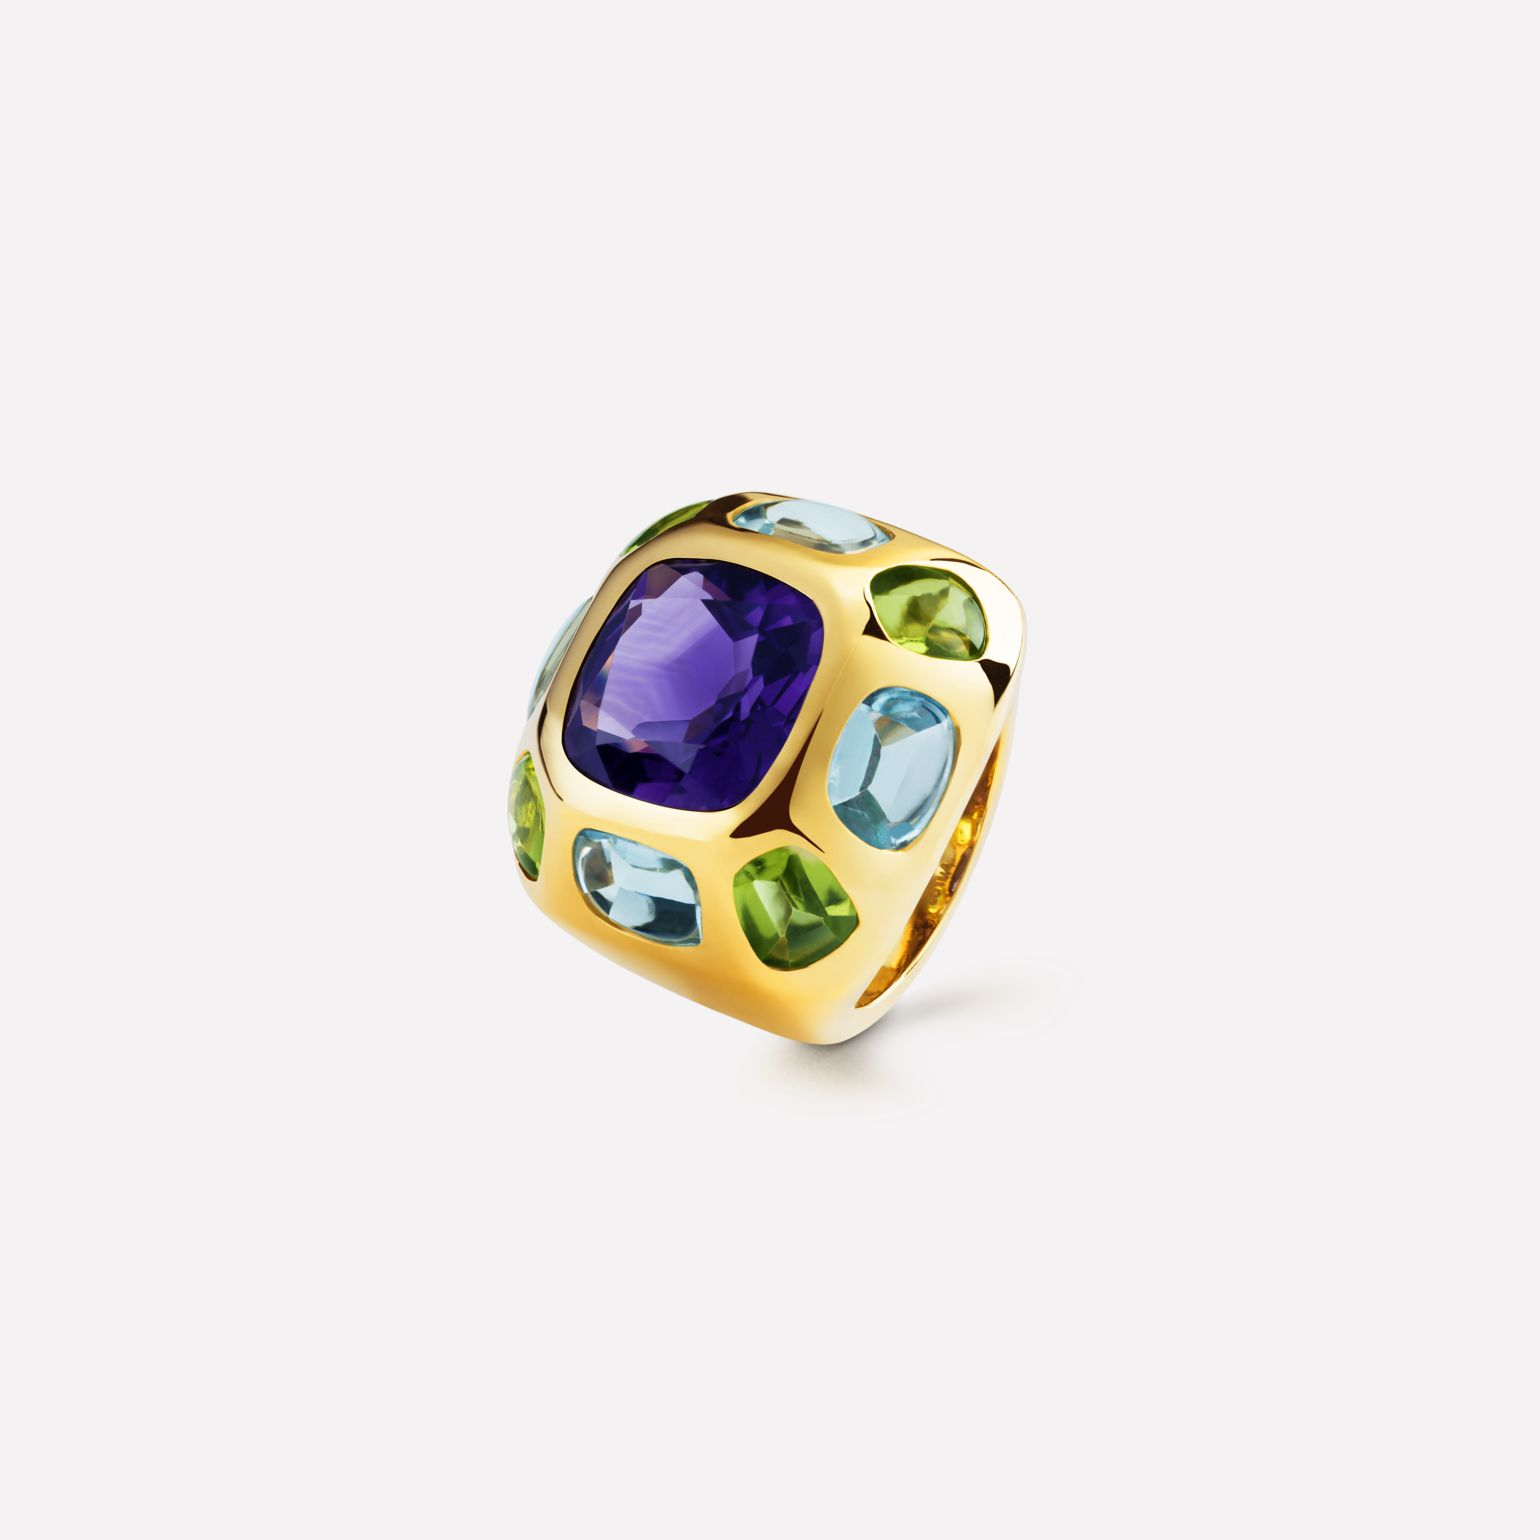 Baroque Ring in 18K yellow gold, semi-precious gemstones and central gemstone